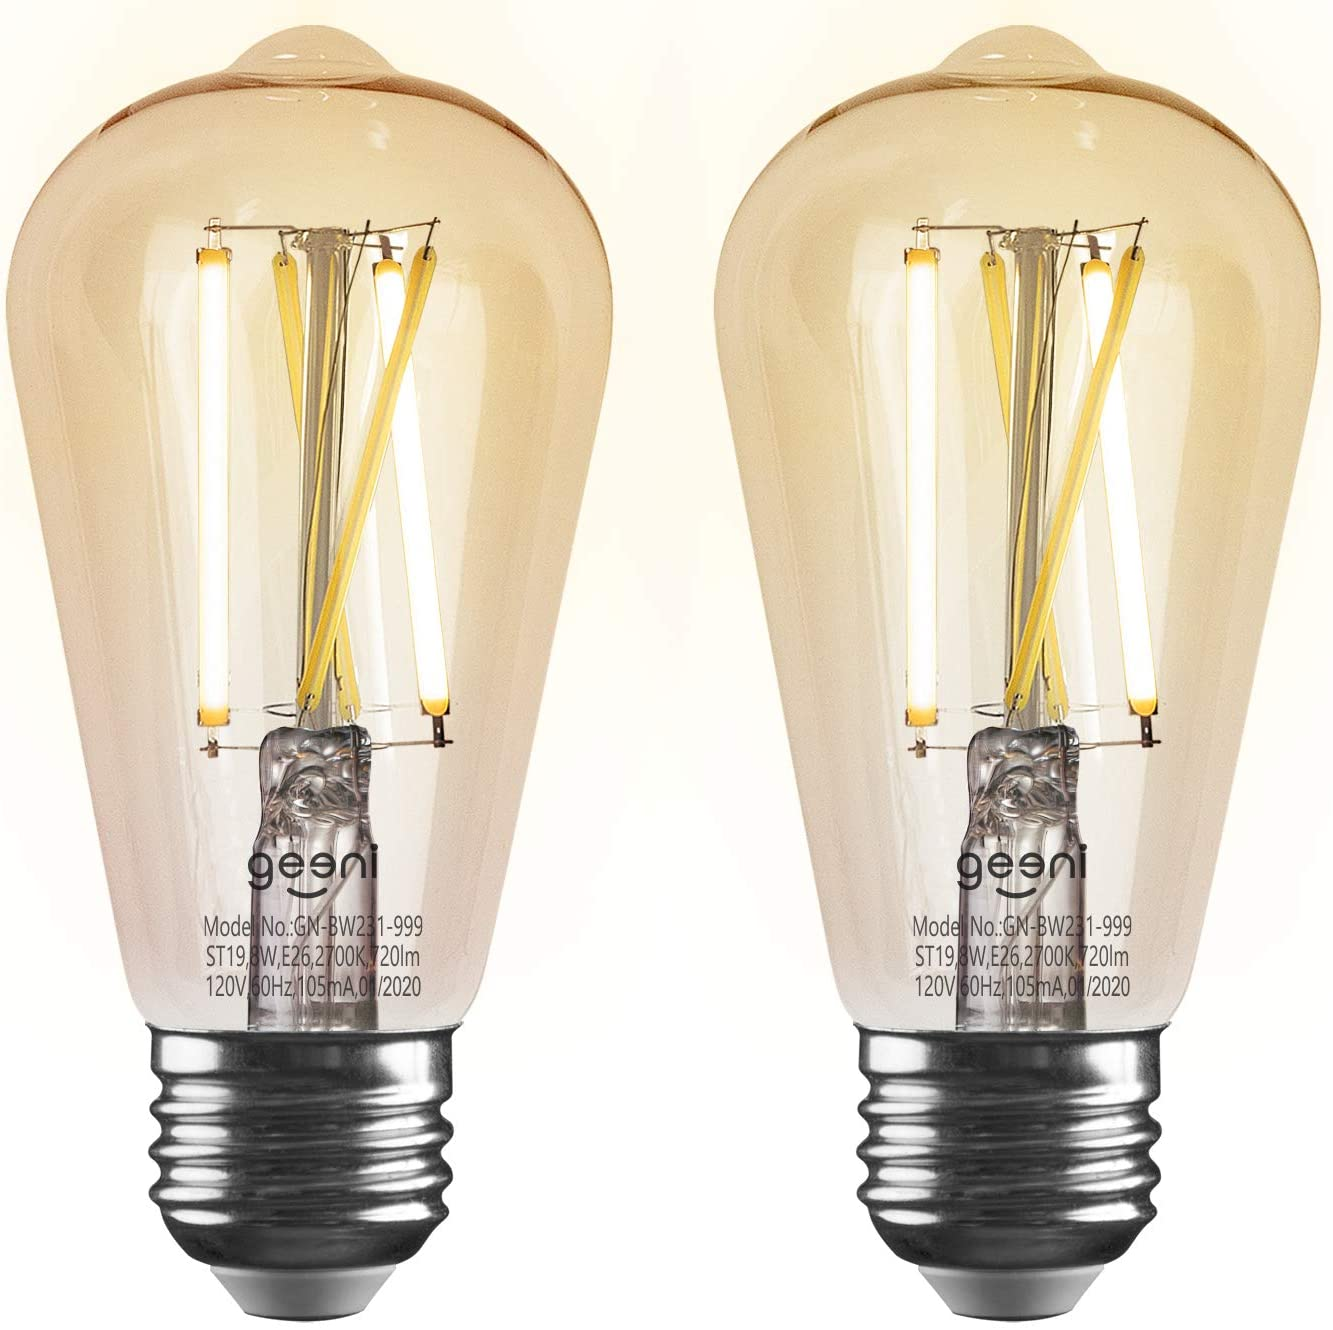 Geeni LUX Amber ST19 Edison WiFi LED Smart Bulb, 2700K - 6500K 8W, E26 Base, Dimmable, Tunable White Light, Compatible with Amazon Alexa & Google Home - No Hub Required- 2 Pack